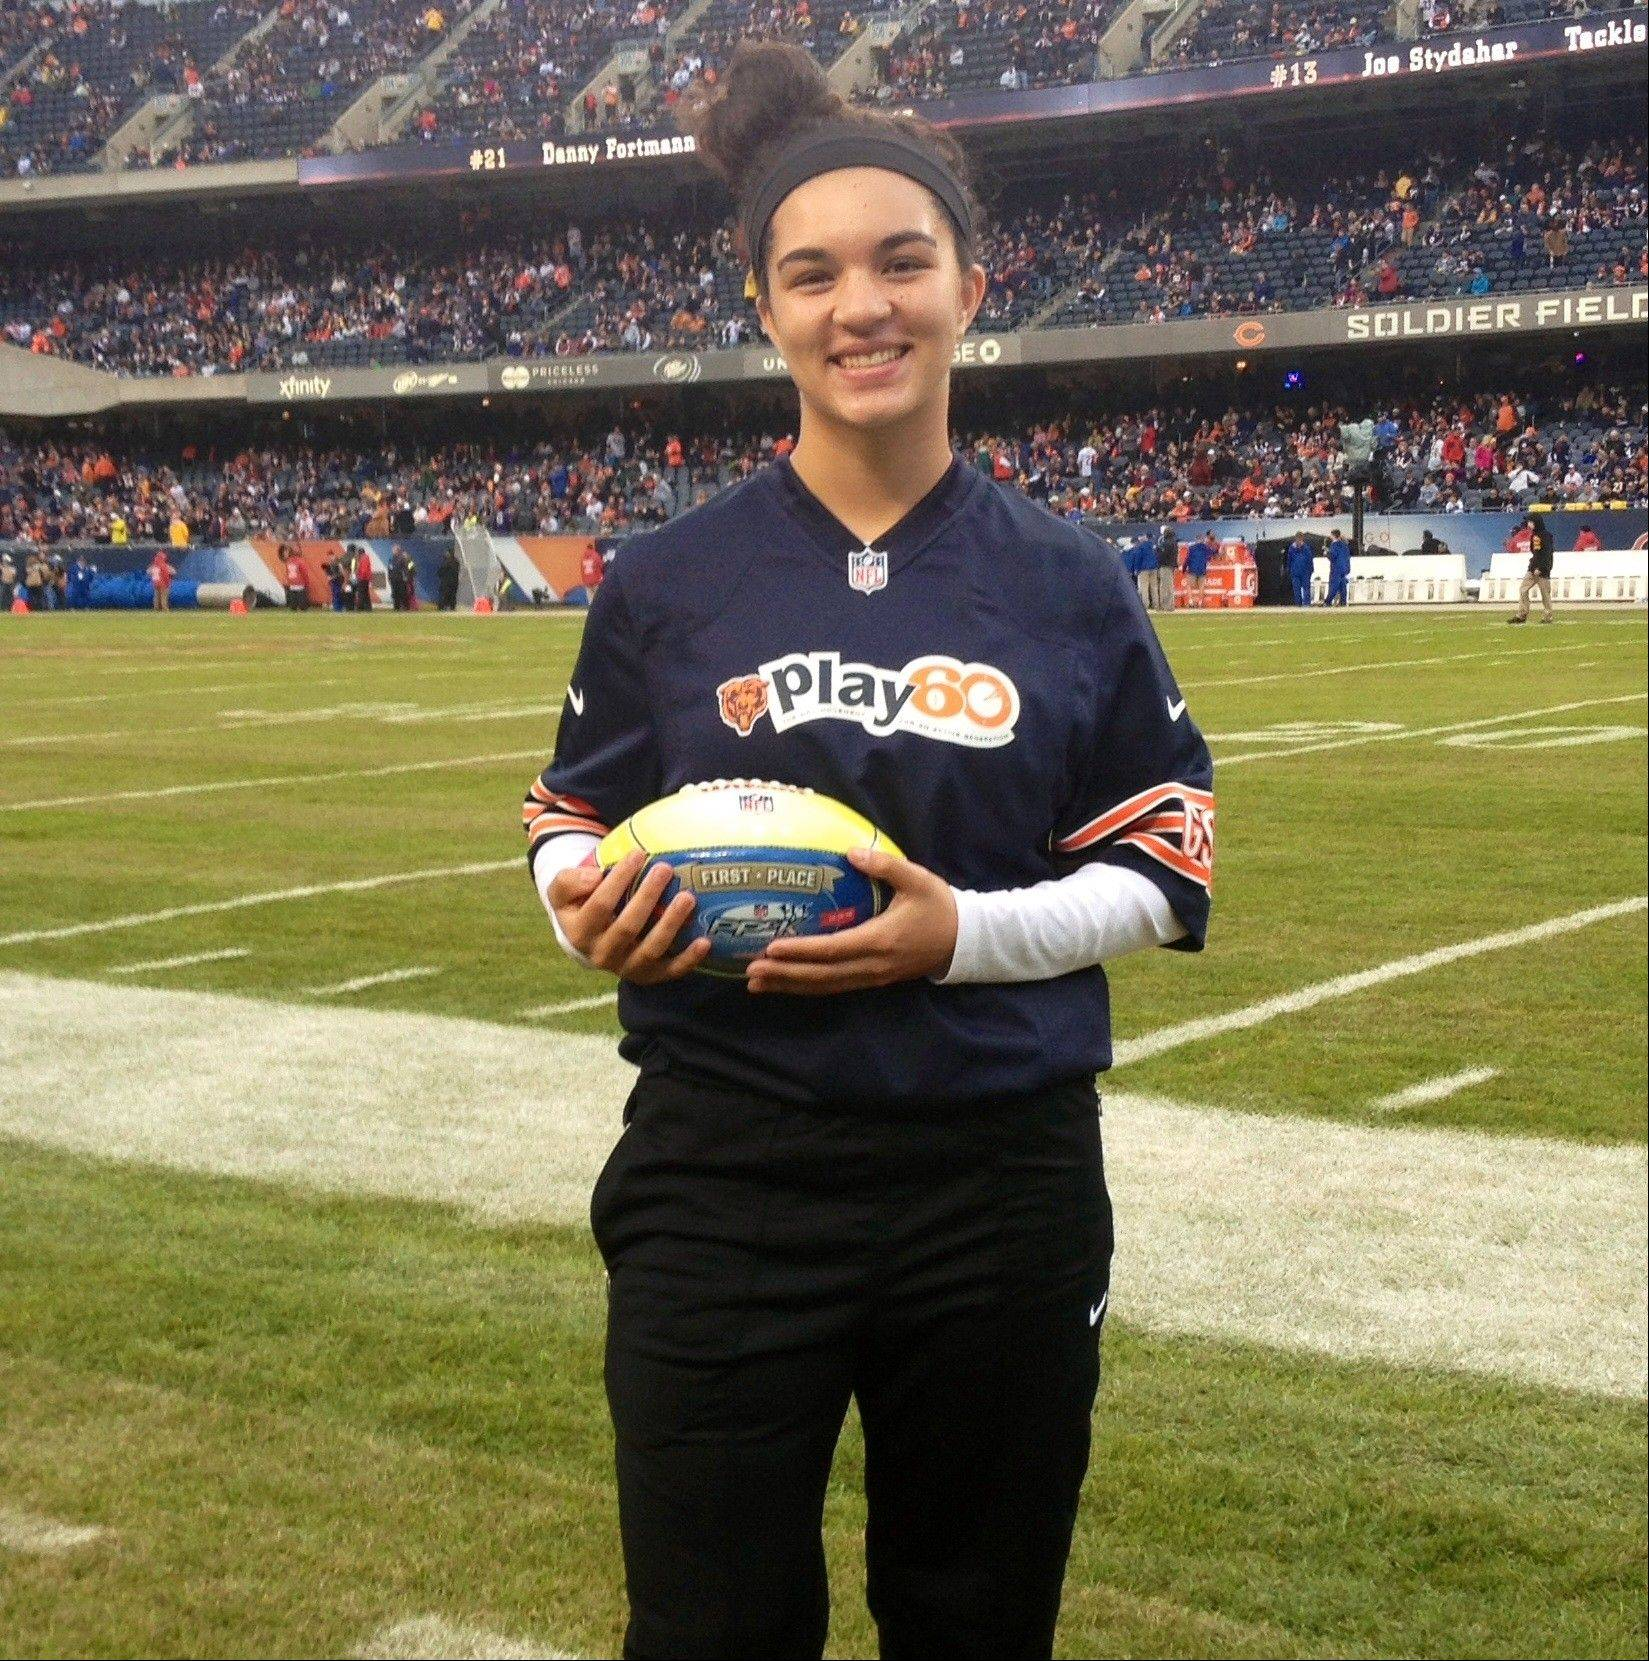 Weeks of preparation paid off this weekend for Alisa Fallon of Des Plaines, who won her age group in the NFL's Punt, Pass and Kick contest in Denver. Alisa, shown here at Soldier Field, was honored Sunday before a national television audience during the Denver Broncos playoff game.